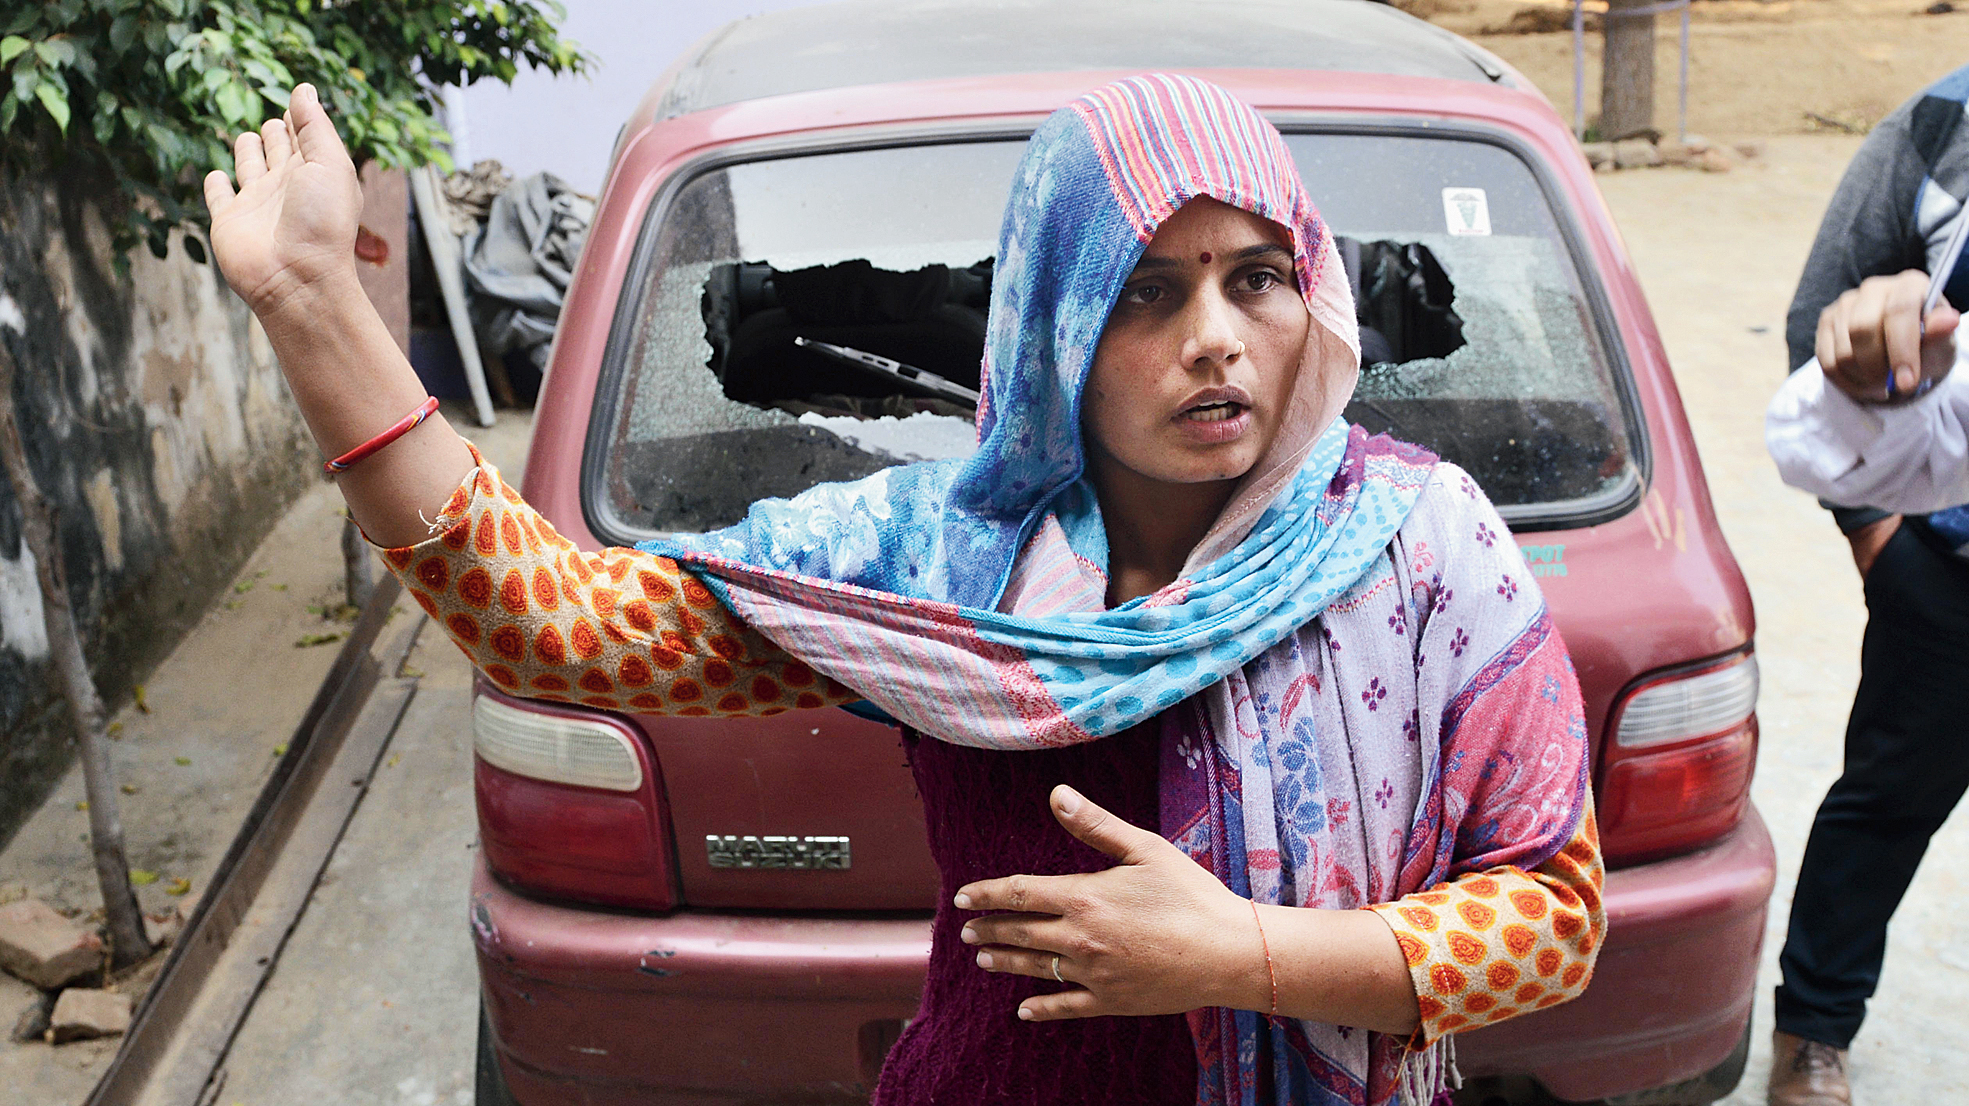 Preeti, the wife of Raj Kumar Chowdhury, in whose field the cow carcasses were found, at Mahav village in Bulandshahr on Tuesday.